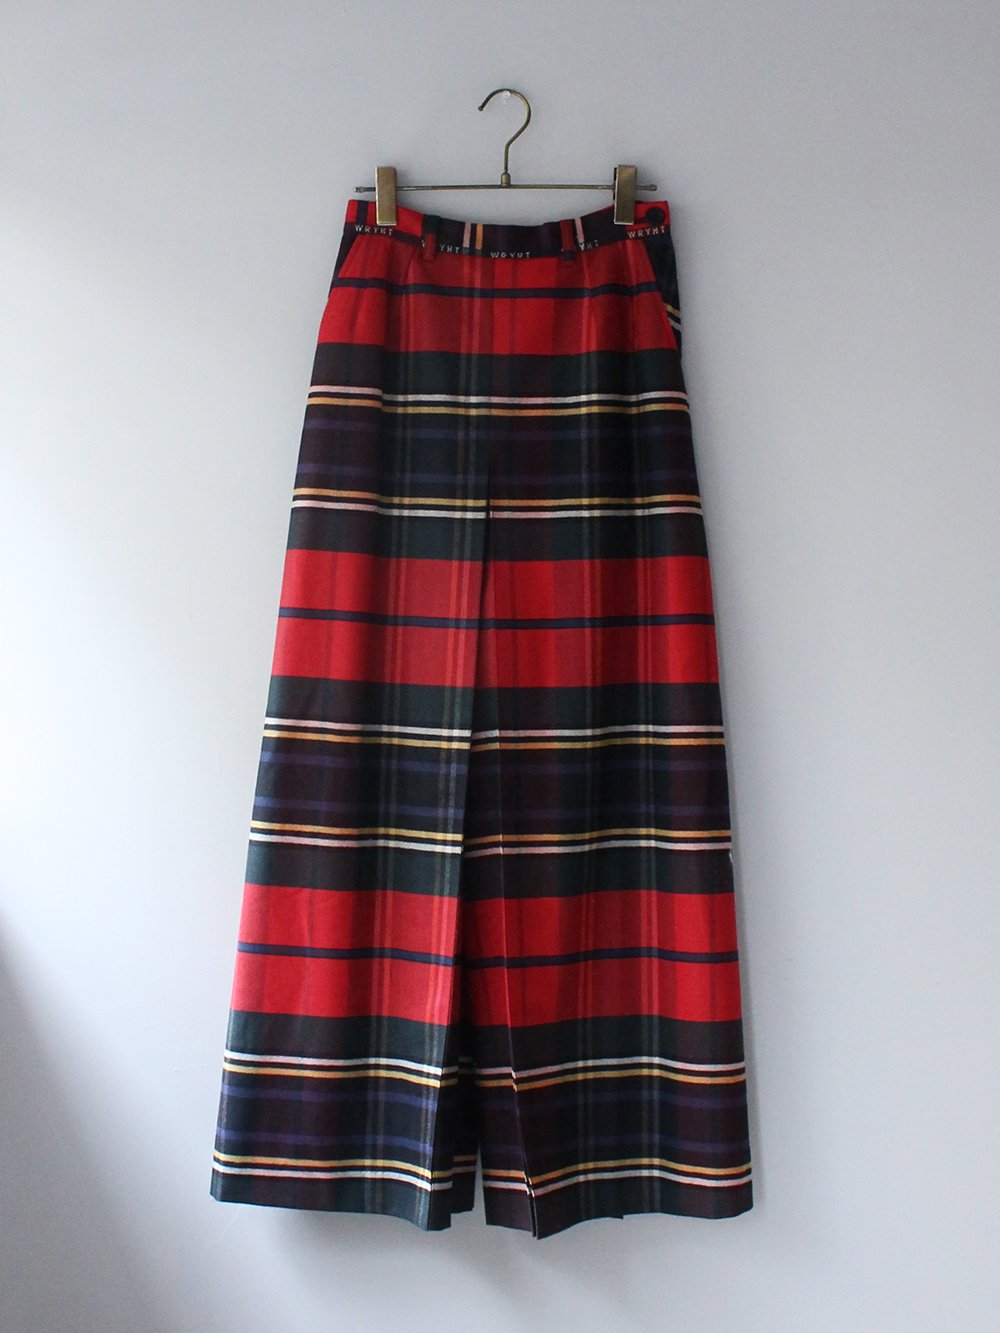 """<img class='new_mark_img1' src='https://img.shop-pro.jp/img/new/icons8.gif' style='border:none;display:inline;margin:0px;padding:0px;width:auto;' />WRYHT """" CULOTTE SKIRT (CAYENNE) """""""